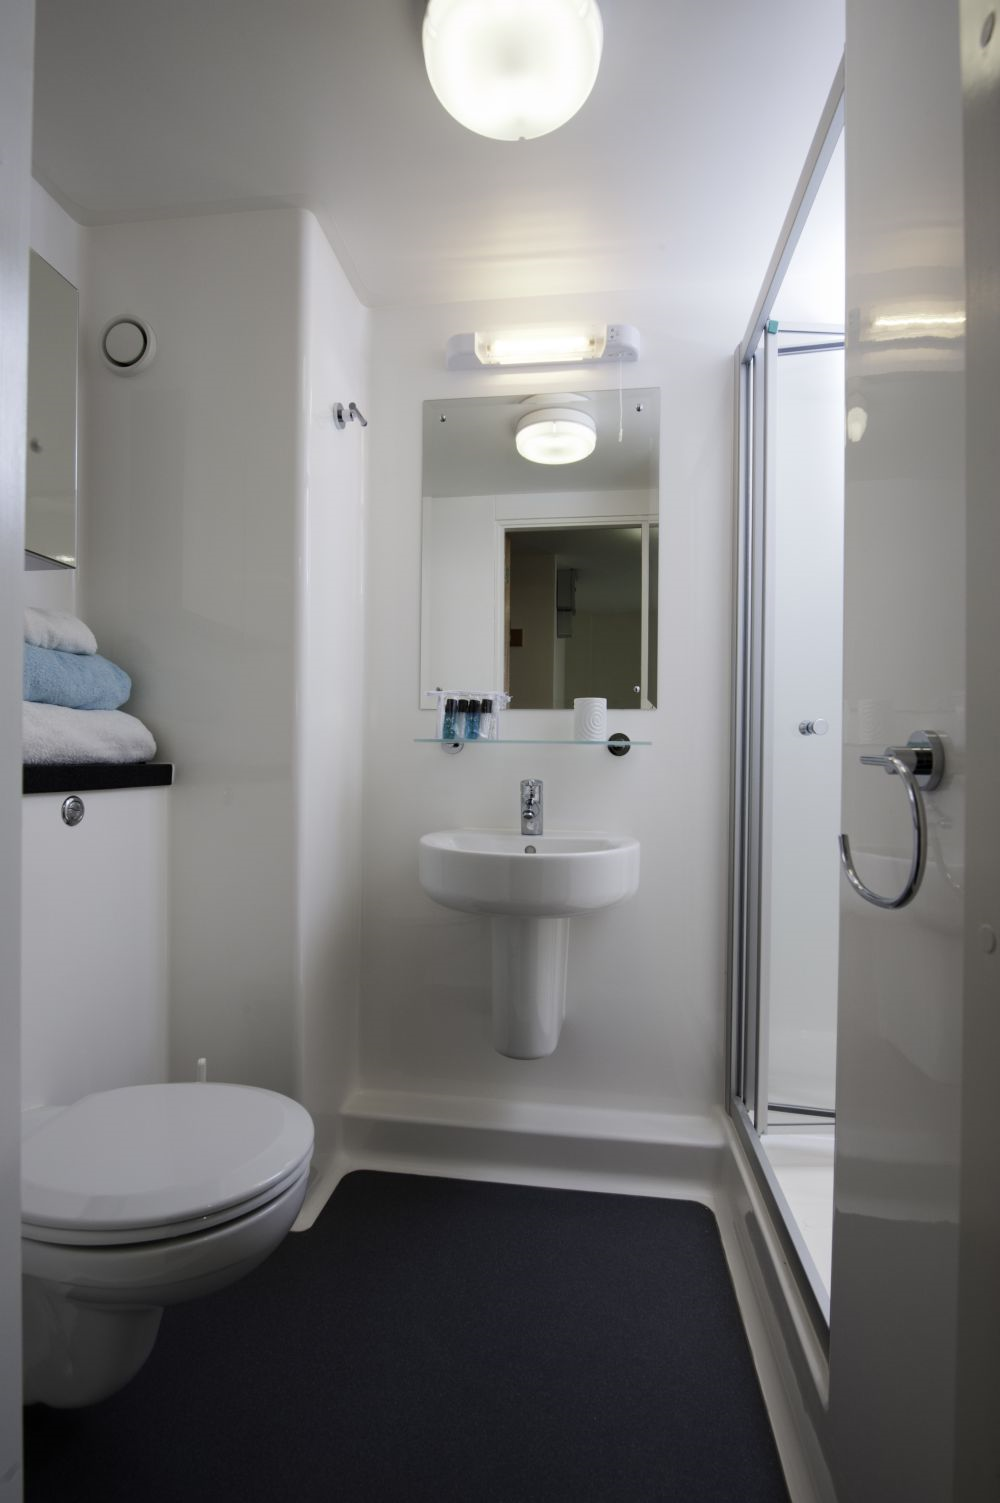 New bridge street newcastle guest b b book now - Northumbria university swimming pool ...